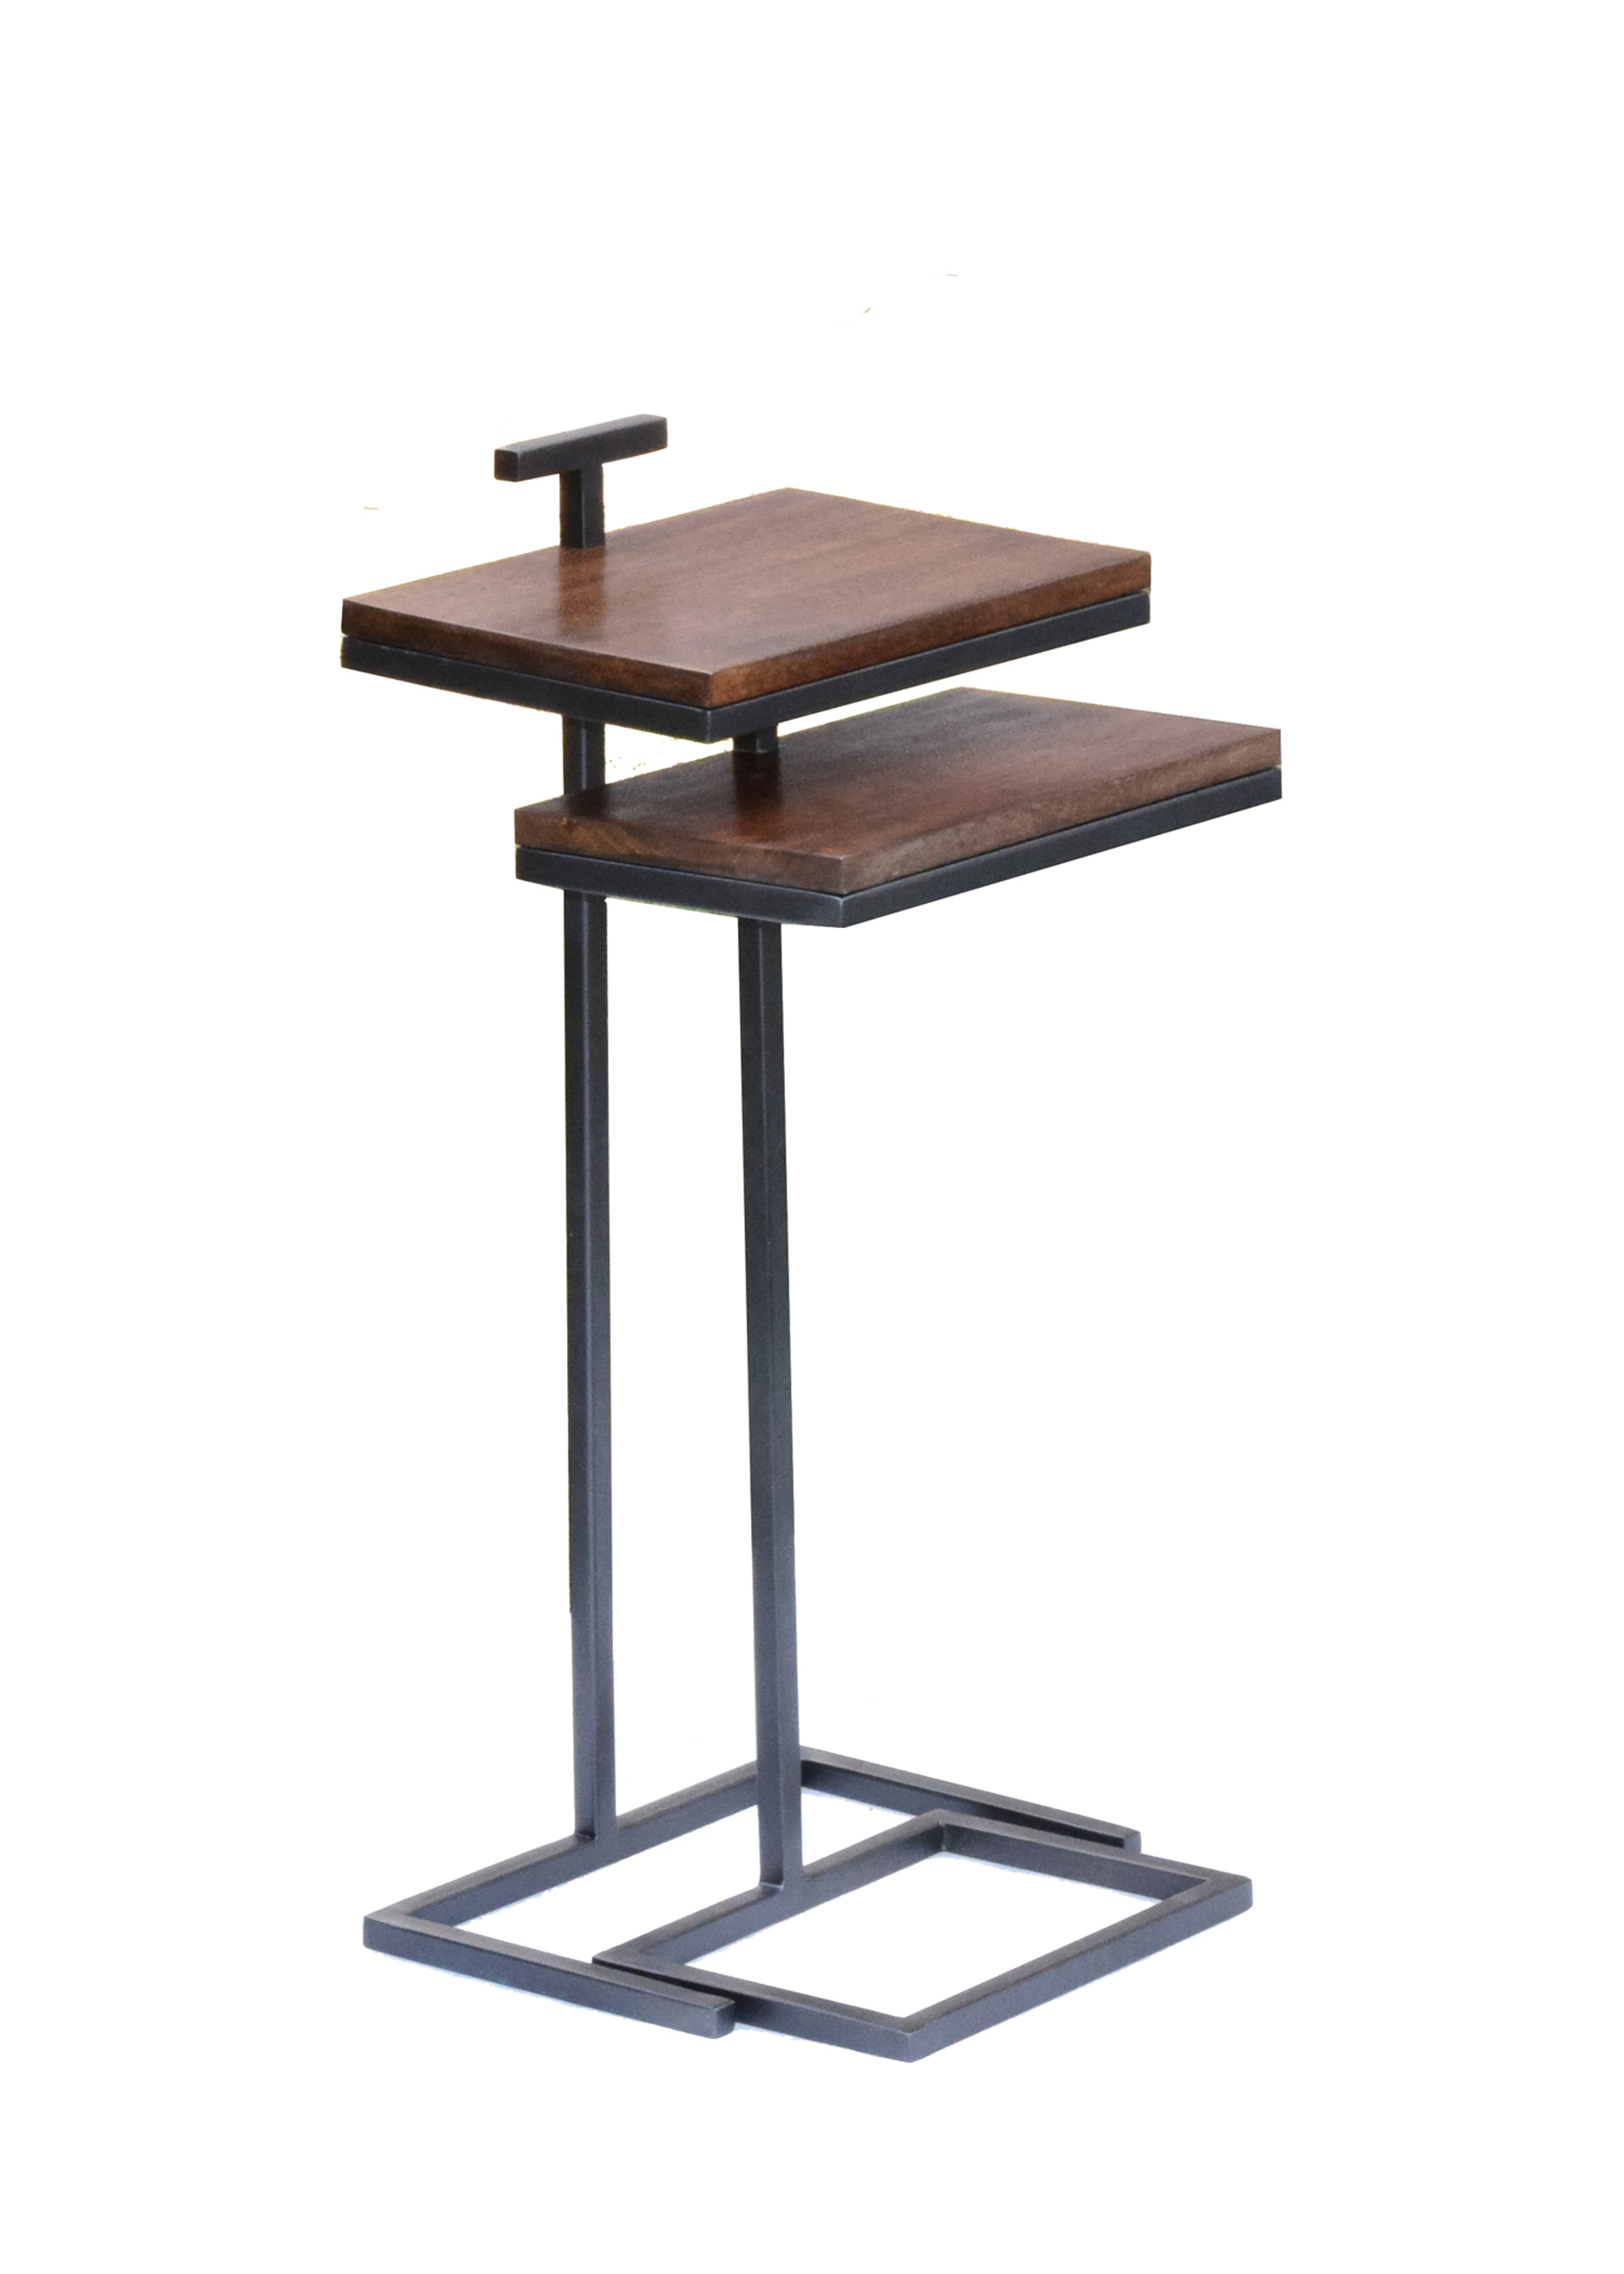 931166 - Nesting Table